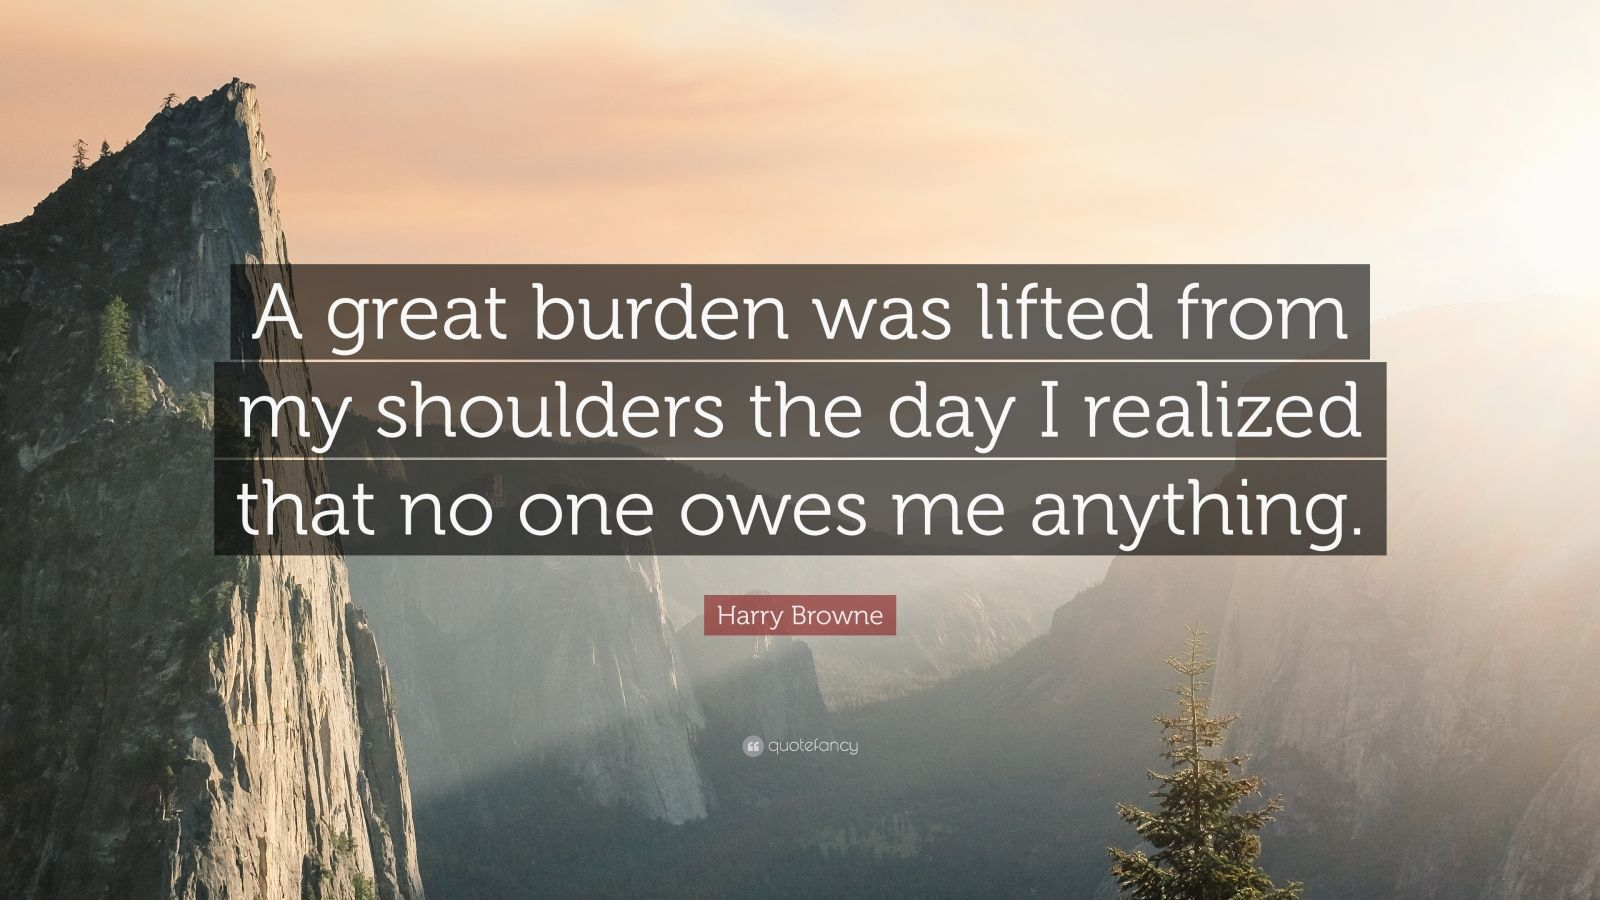 """Harry Browne Quote: """"A great burden was lifted from my shoulders the day I realized that no one owes me anything."""""""